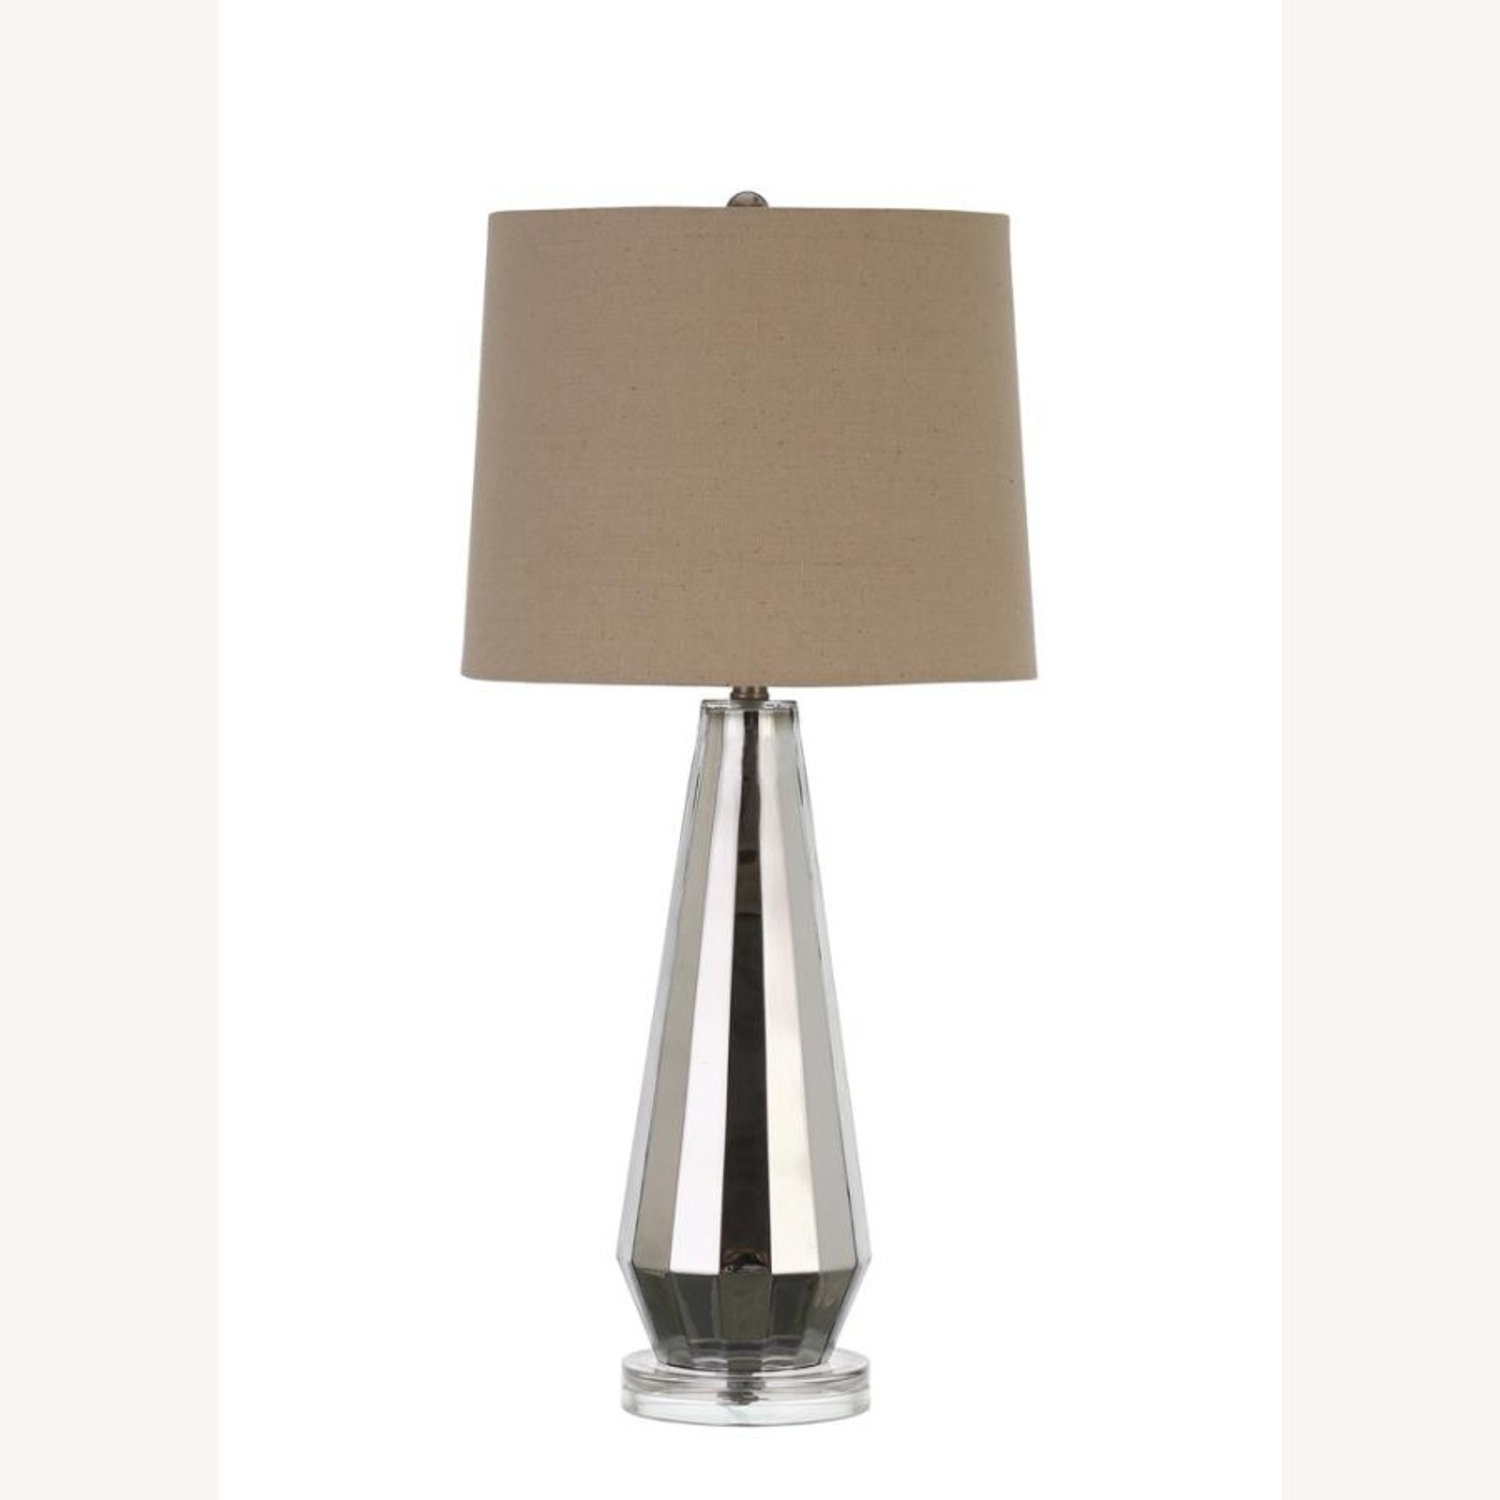 Table Lamp W/ Crystal-Like Base In Creamy White - image-0